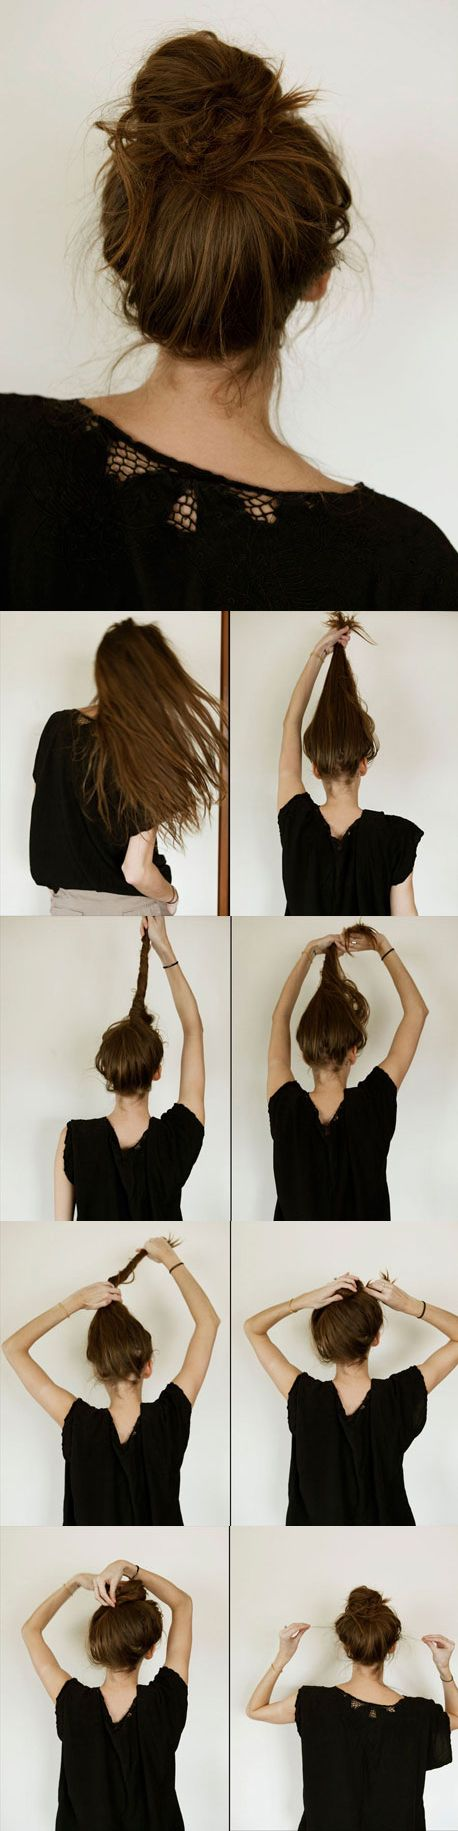 #coiffure: le bun le plus simple à faire